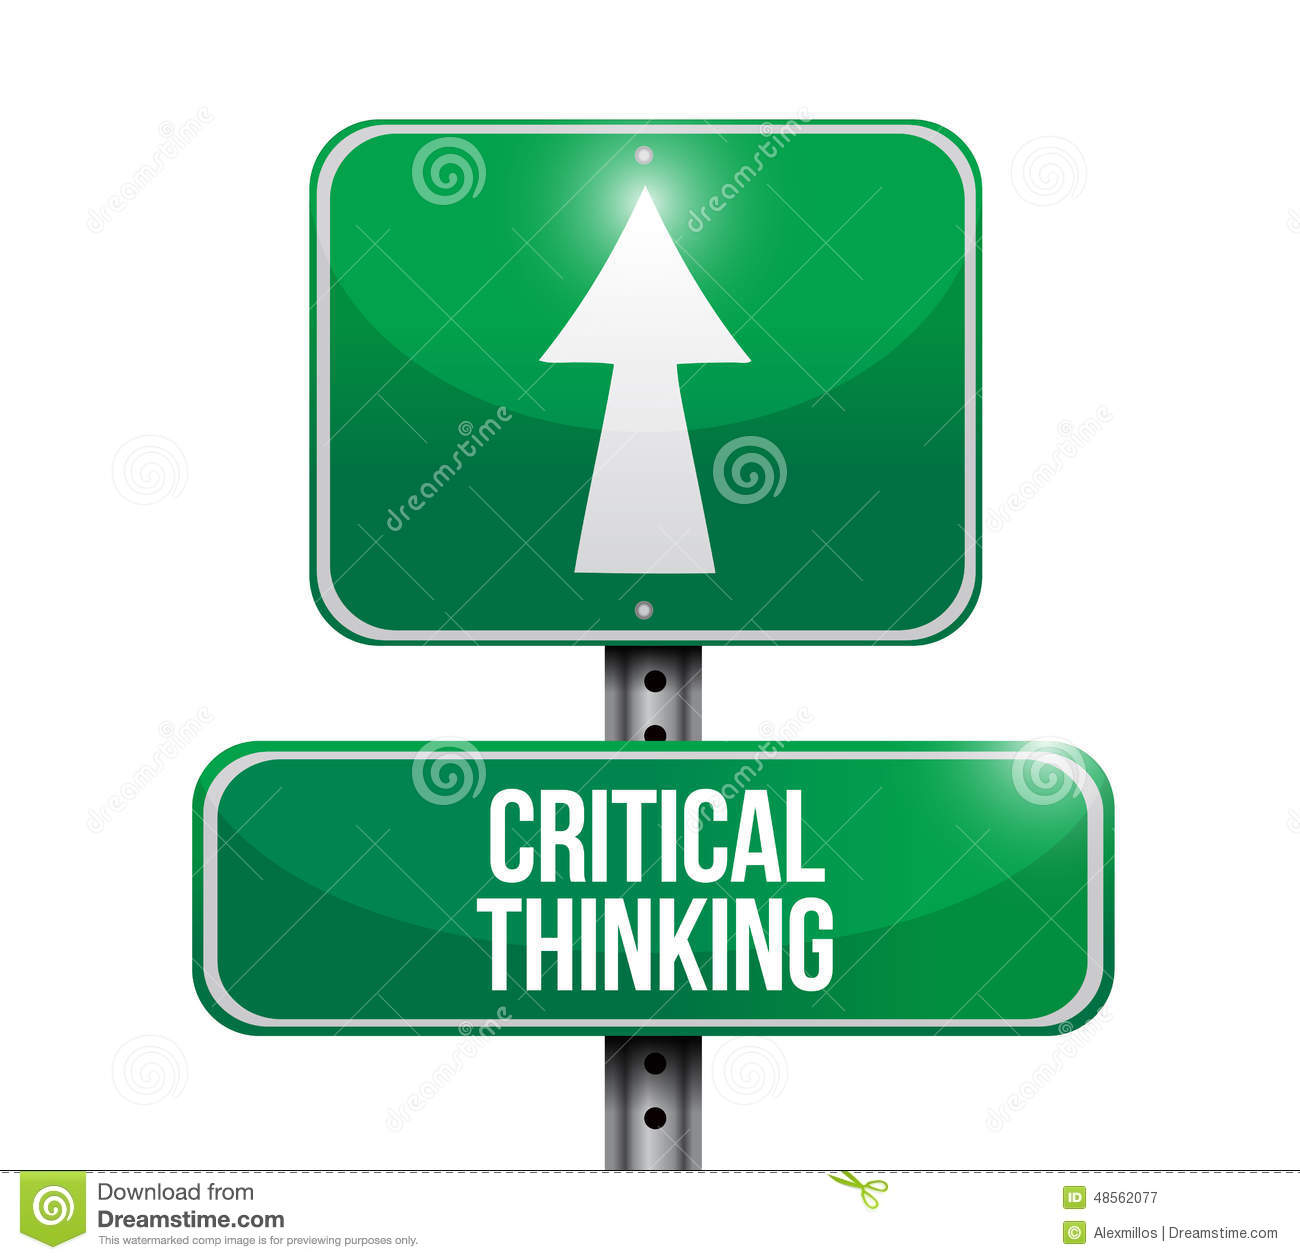 critical design thinking Critical thinking is the ability to think reflectively and independently in order to make thoughtful decisions by focusing on root-cause issues, critical thinking helps you avoid future problems that can result from your actions.